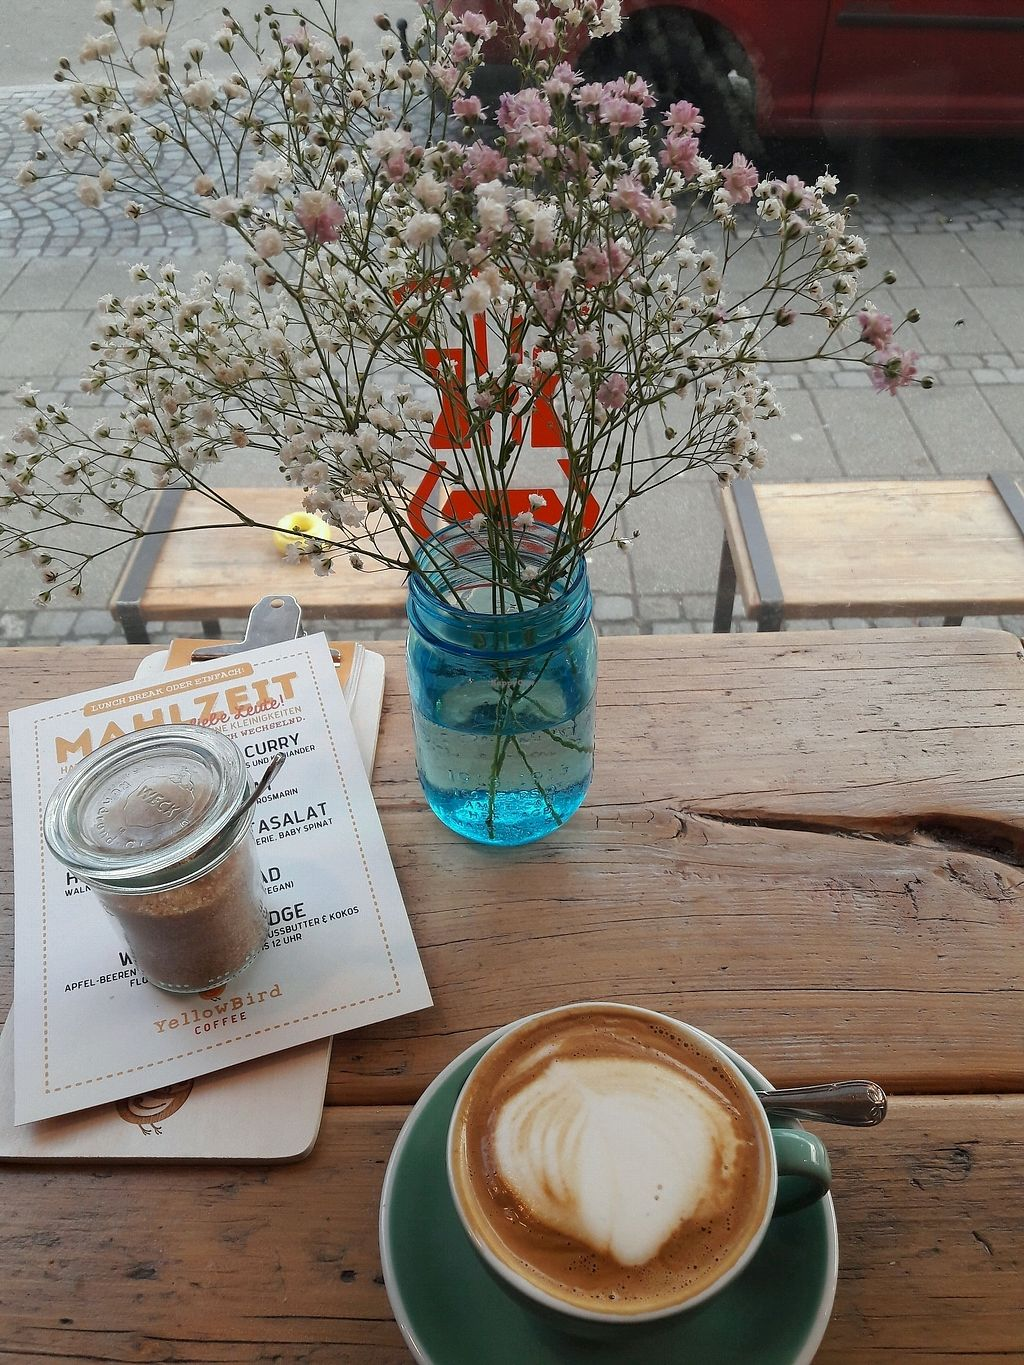 """Photo of YellowBird Coffee  by <a href=""""/members/profile/Scarify"""">Scarify</a> <br/>flatwhite with soymilk <br/> April 1, 2018  - <a href='/contact/abuse/image/116365/379328'>Report</a>"""